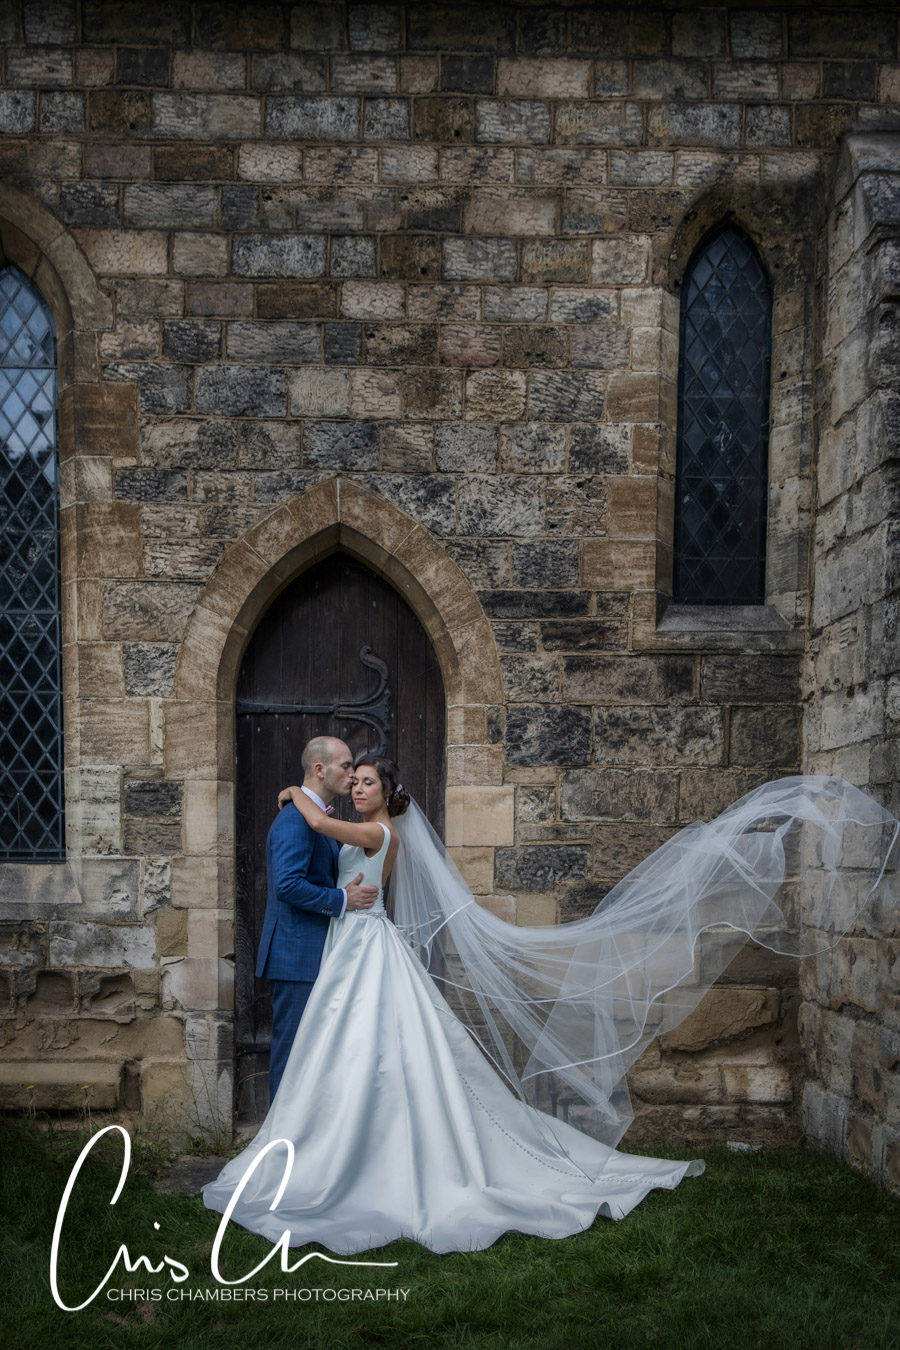 Leeds wedding photographer, Yorkshire wedding photography, marquee weddings, Chris Chambers Photography